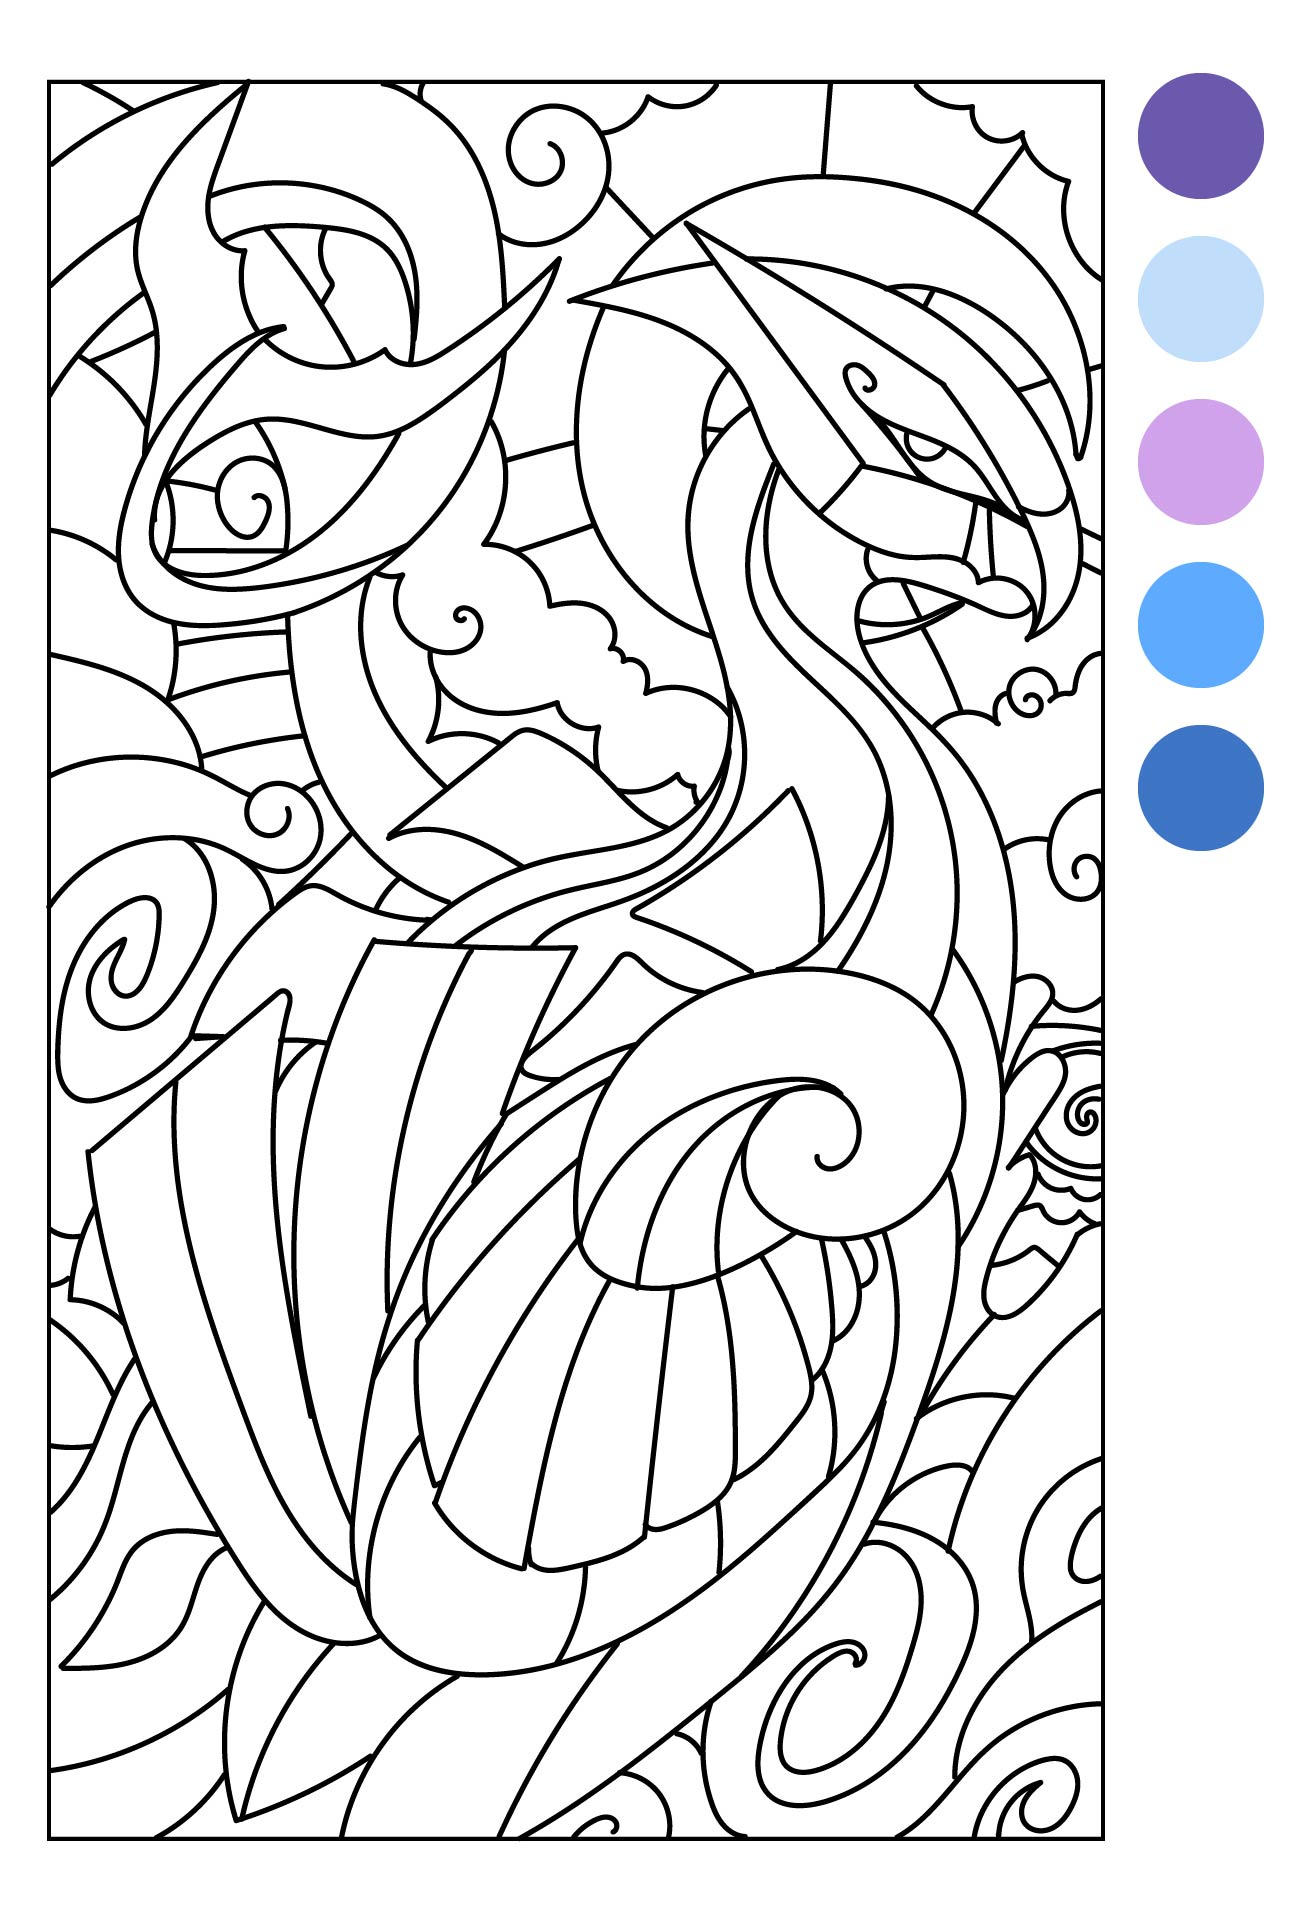 mindware coloring pages printable fun color page